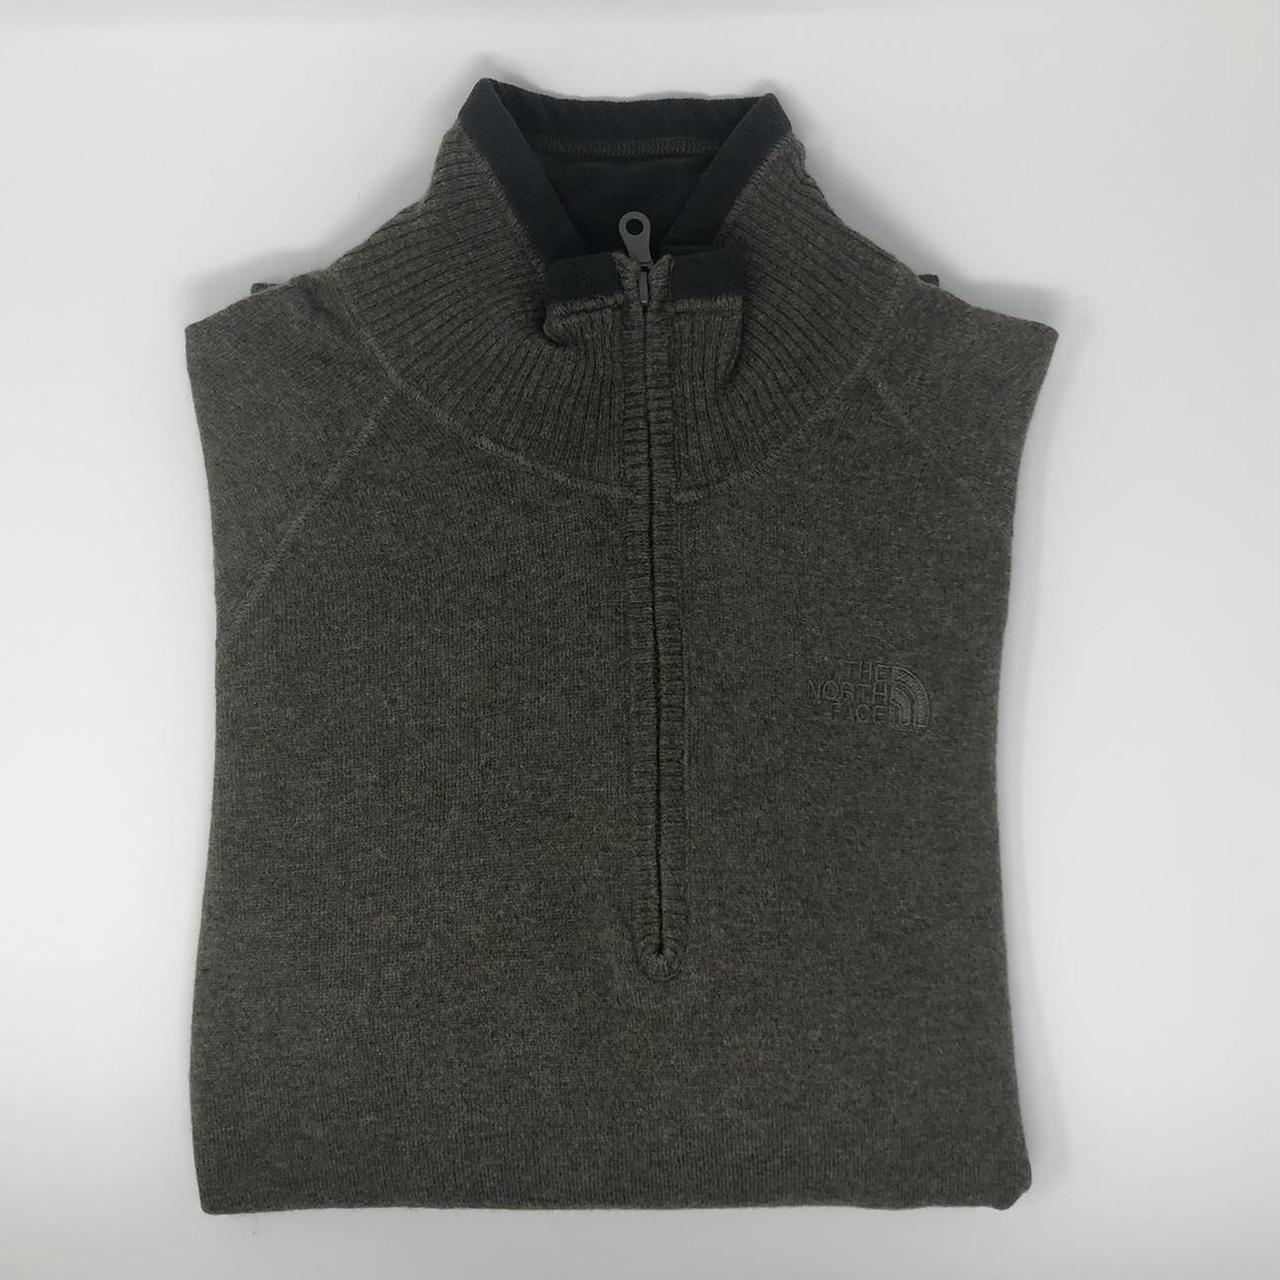 Product Image 1 - The North Face 1/4 Zip